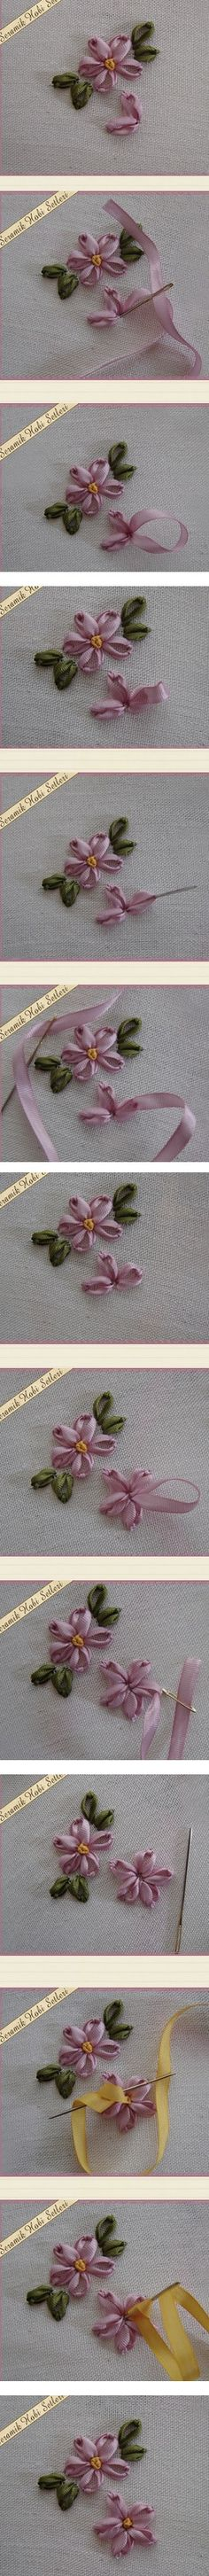 Wonderful Ribbon Embroidery Flowers by Hand Ideas. Enchanting Ribbon Embroidery Flowers by Hand Ideas. Ribbon Embroidery Tutorial, Silk Ribbon Embroidery, Embroidery Stitches, Embroidery Patterns, Hand Embroidery, Flower Embroidery, Ribbon Art, Ribbon Crafts, Ribbon Flower